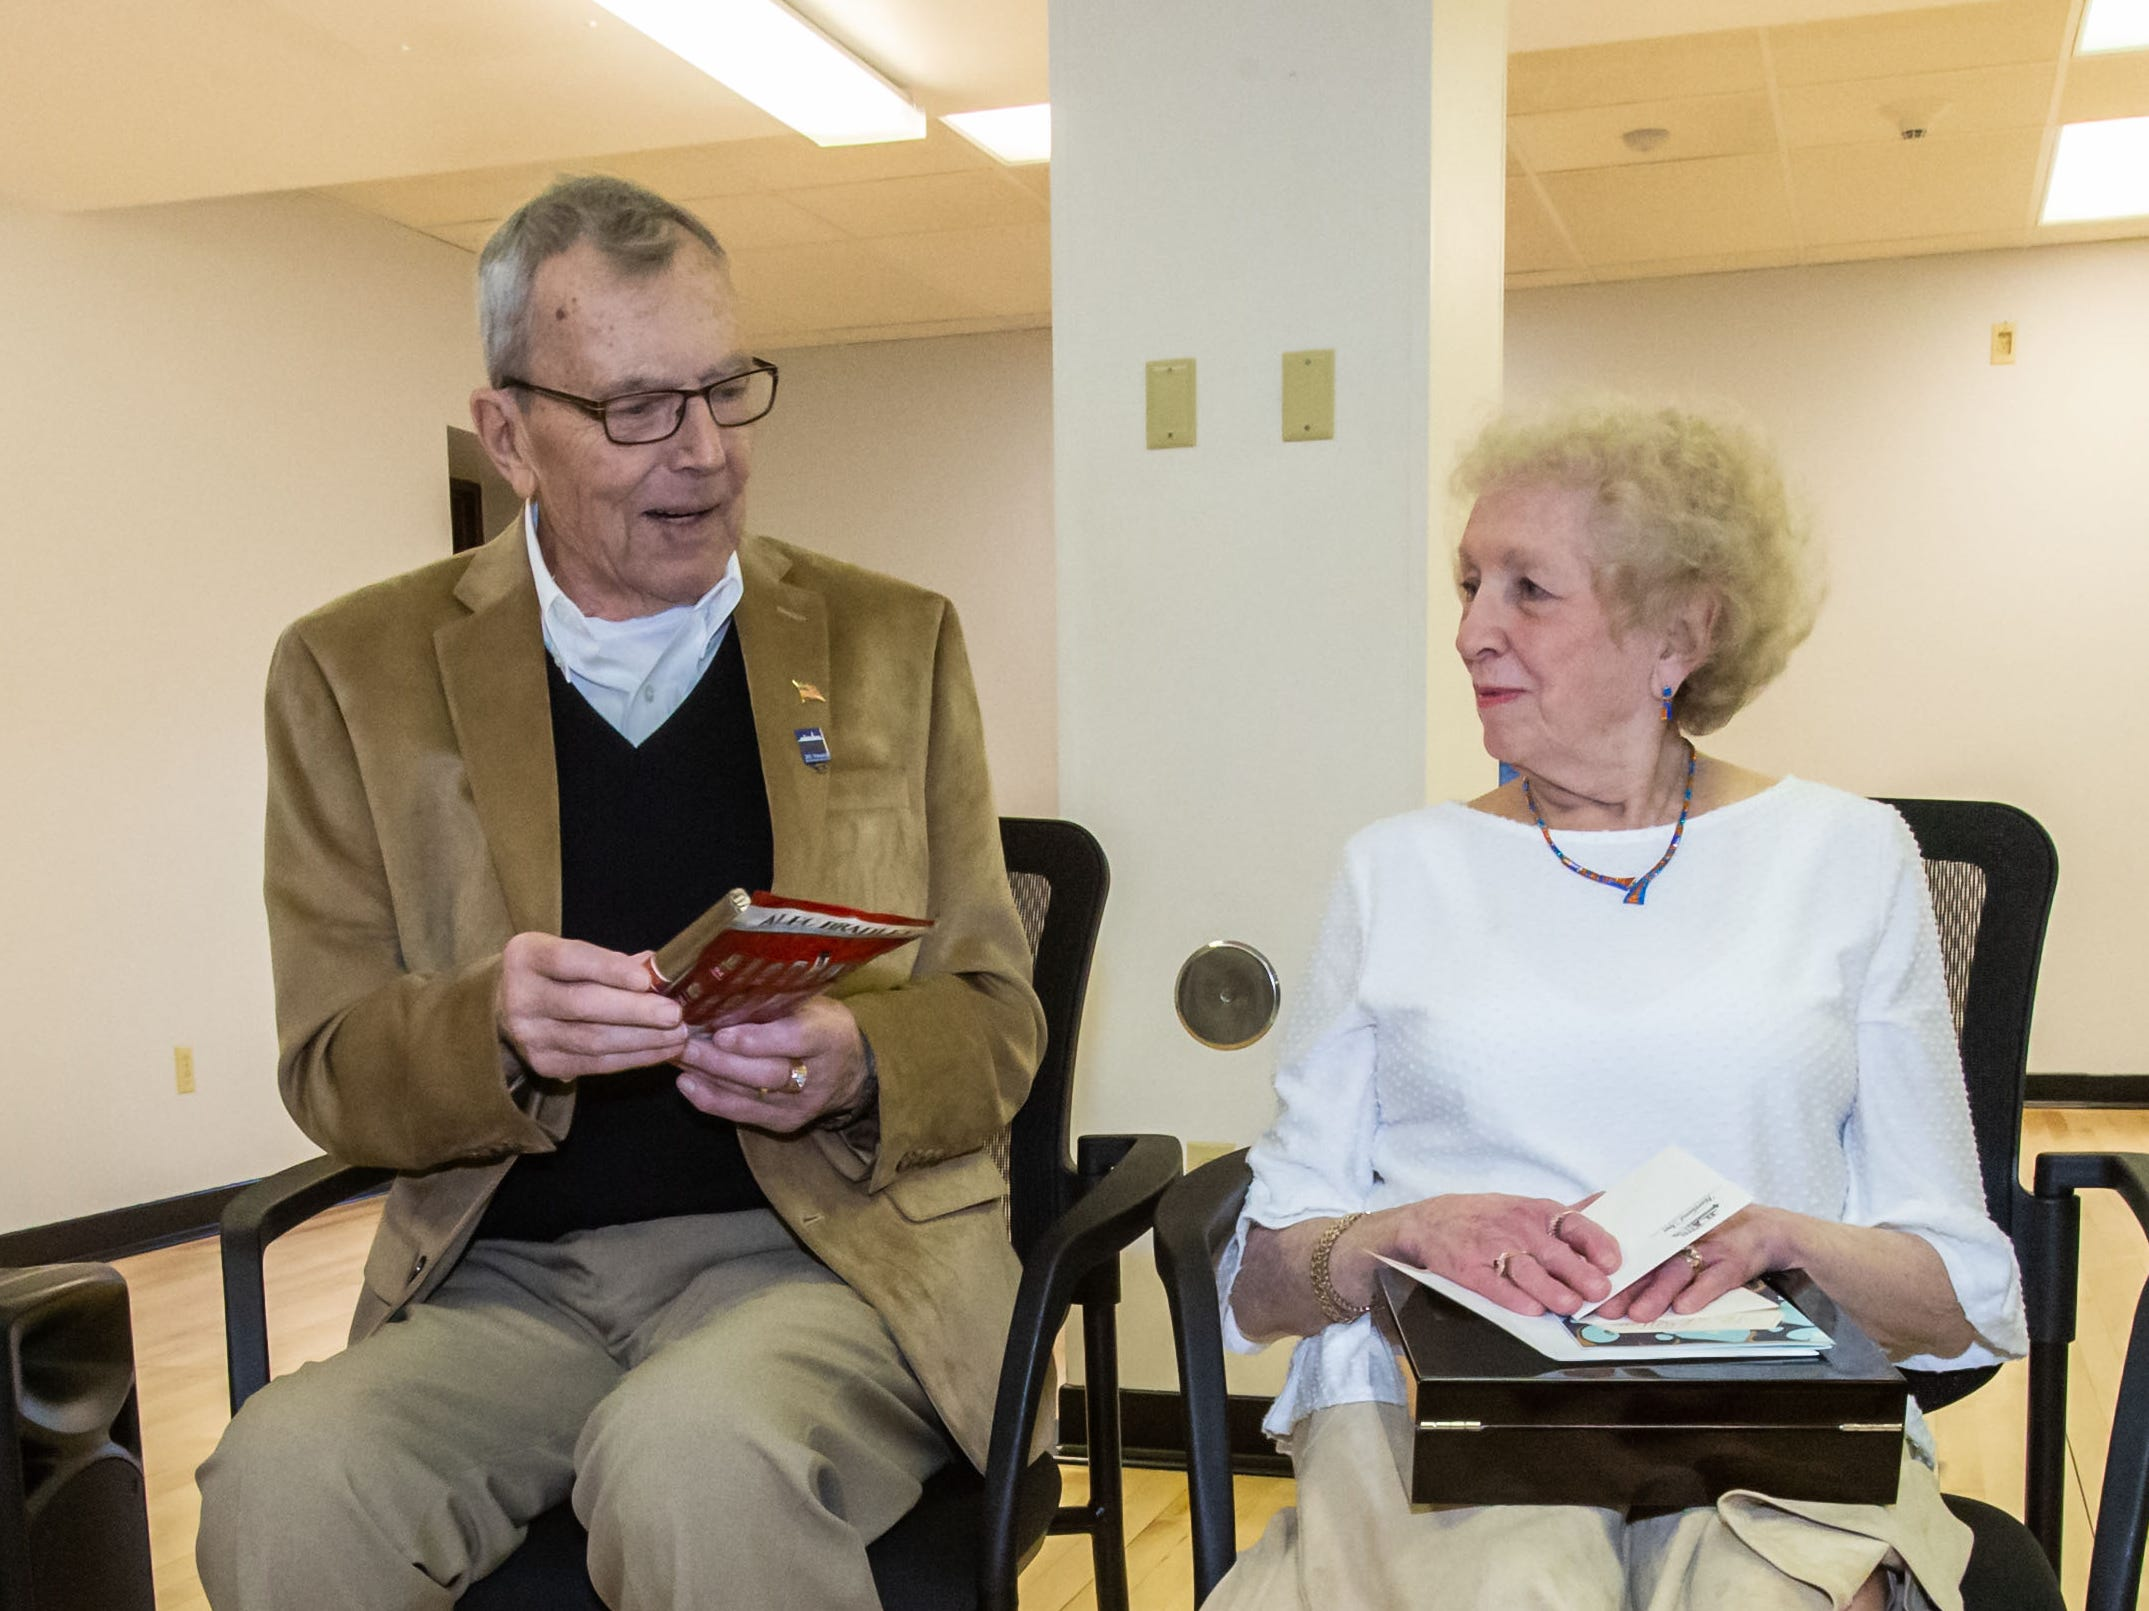 Hartland Village Board trustee Richard Landwehr and his wife Janet open gifts during reception in Richard's honor on Monday, April 8, 2019. Richard is retiring from the board after 53 years of service.